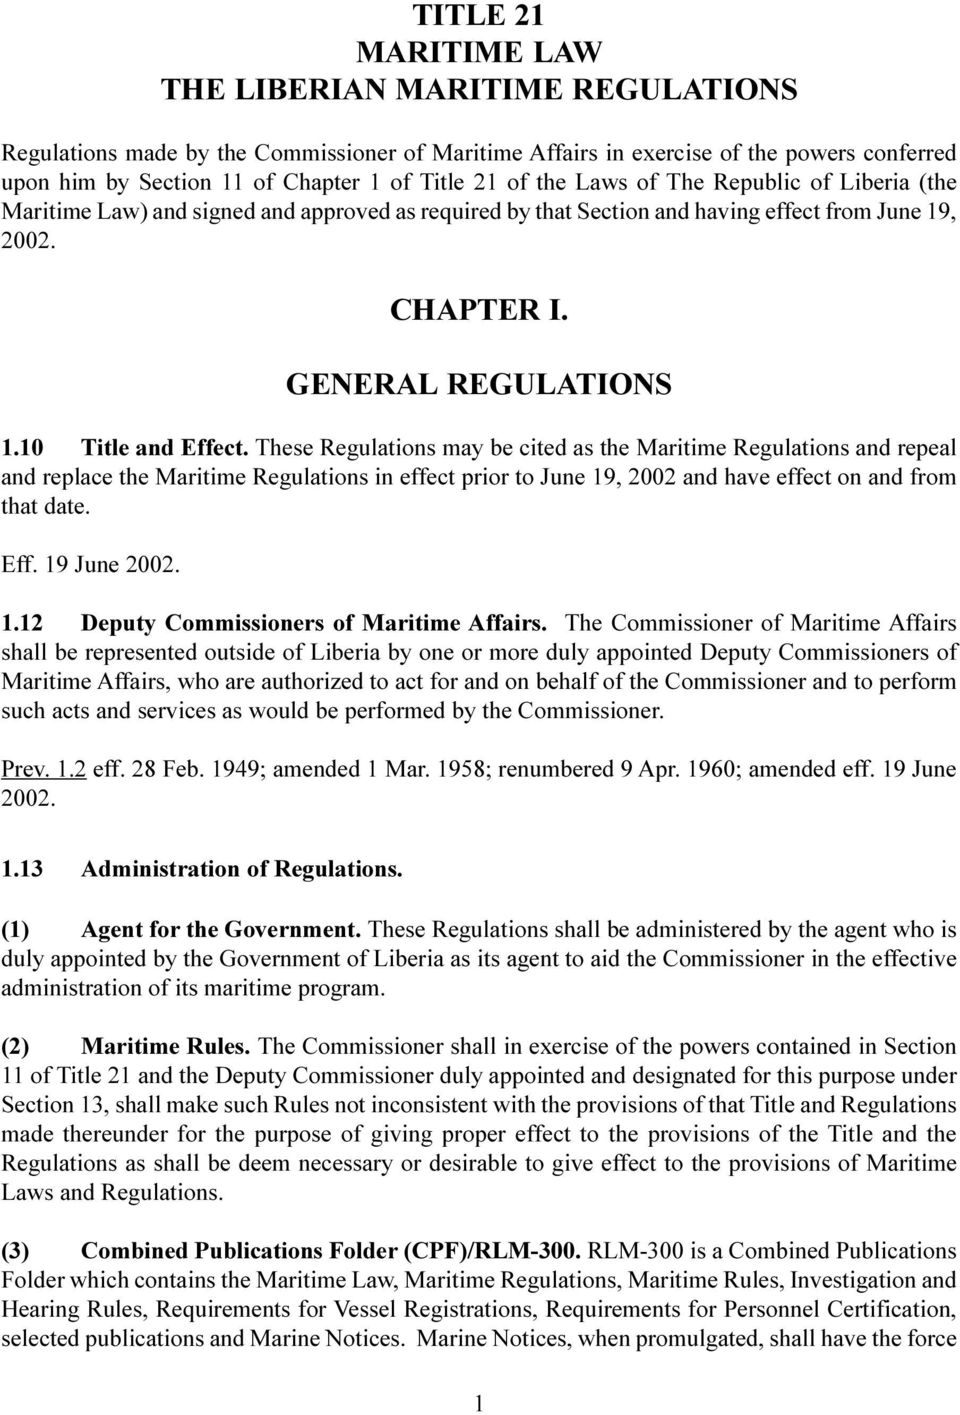 These Regulations may be cited as the Maritime Regulations and repeal and replace the Maritime Regulations in effect prior to June 19, 2002 and have effect on and from that date. Eff. 19 June 2002. 1.12 Deputy Commissioners of Maritime Affairs.